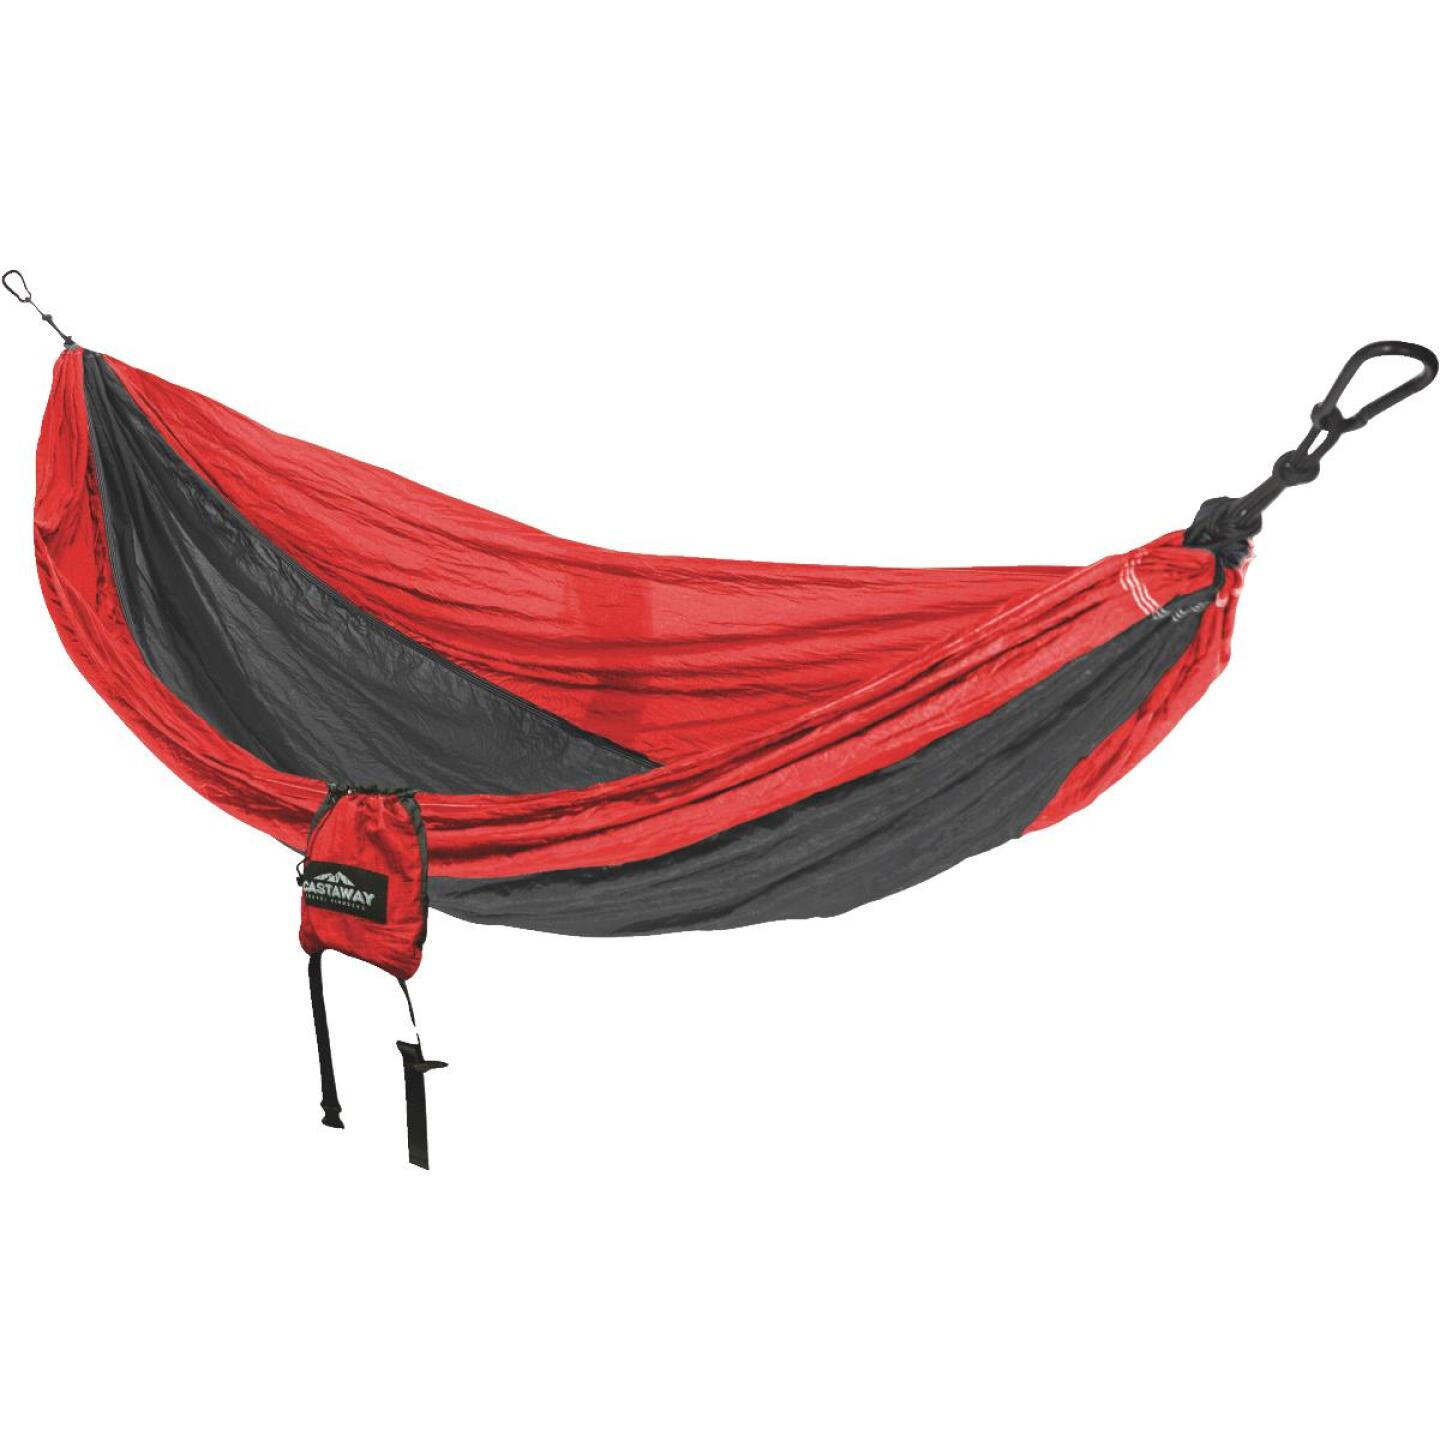 Castaway All-In-One Nylon Red Travel Hammock Image 3